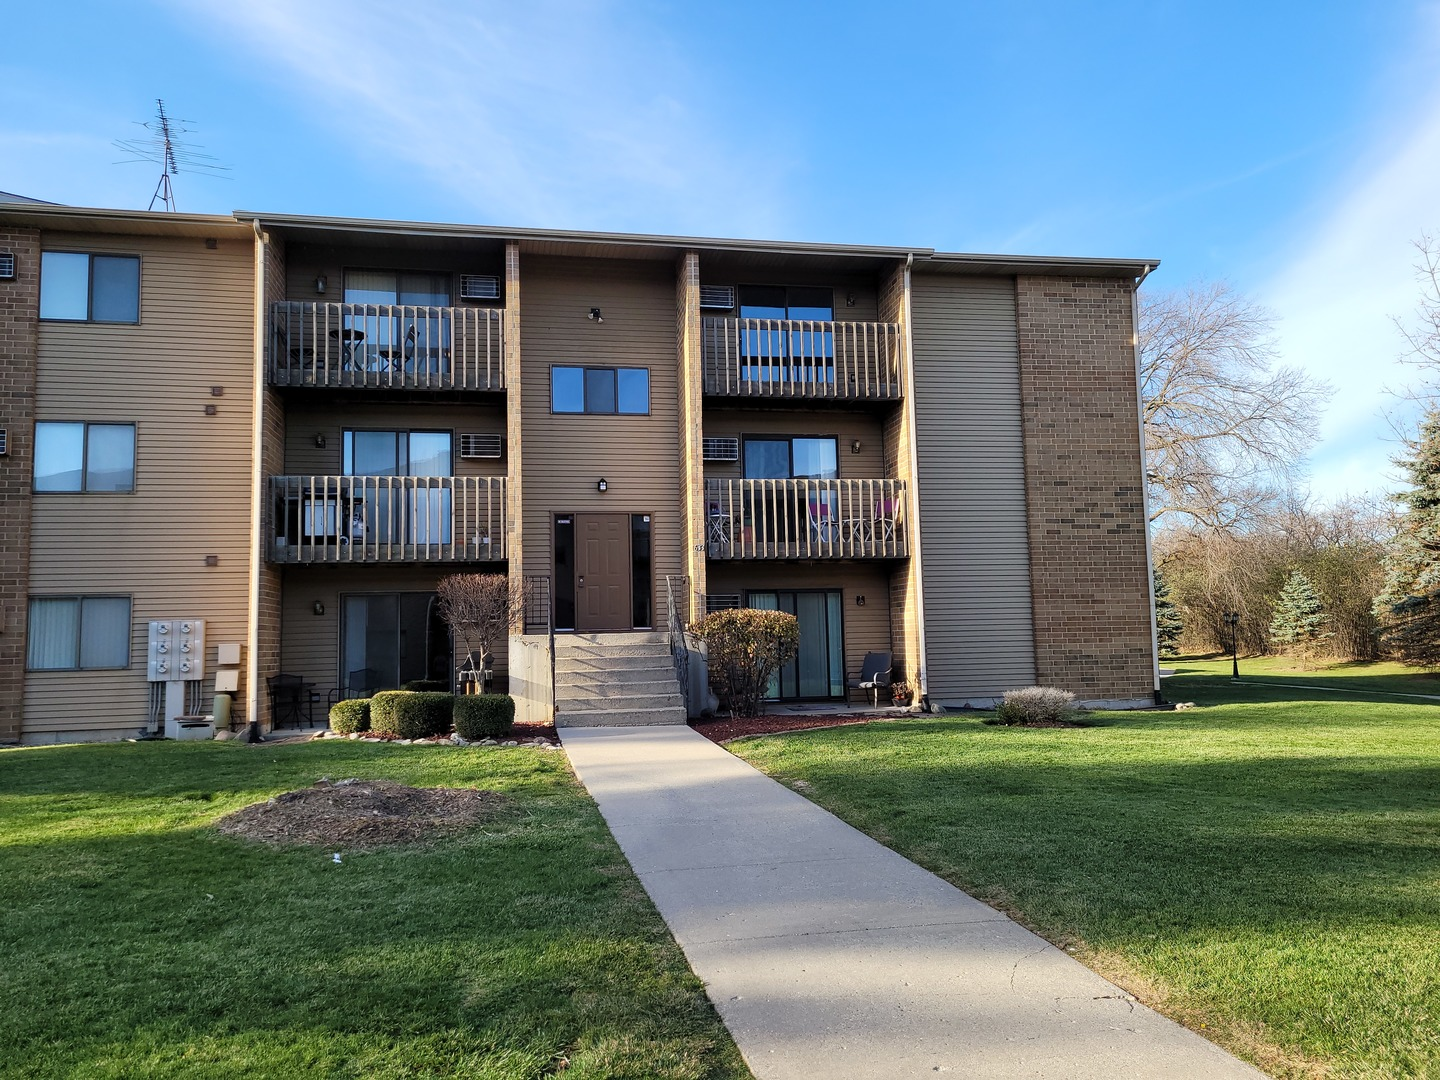 Photo for 633 Virginia Road, Unit Number 314, Crystal Lake, IL 60014 (MLS # 10937618)